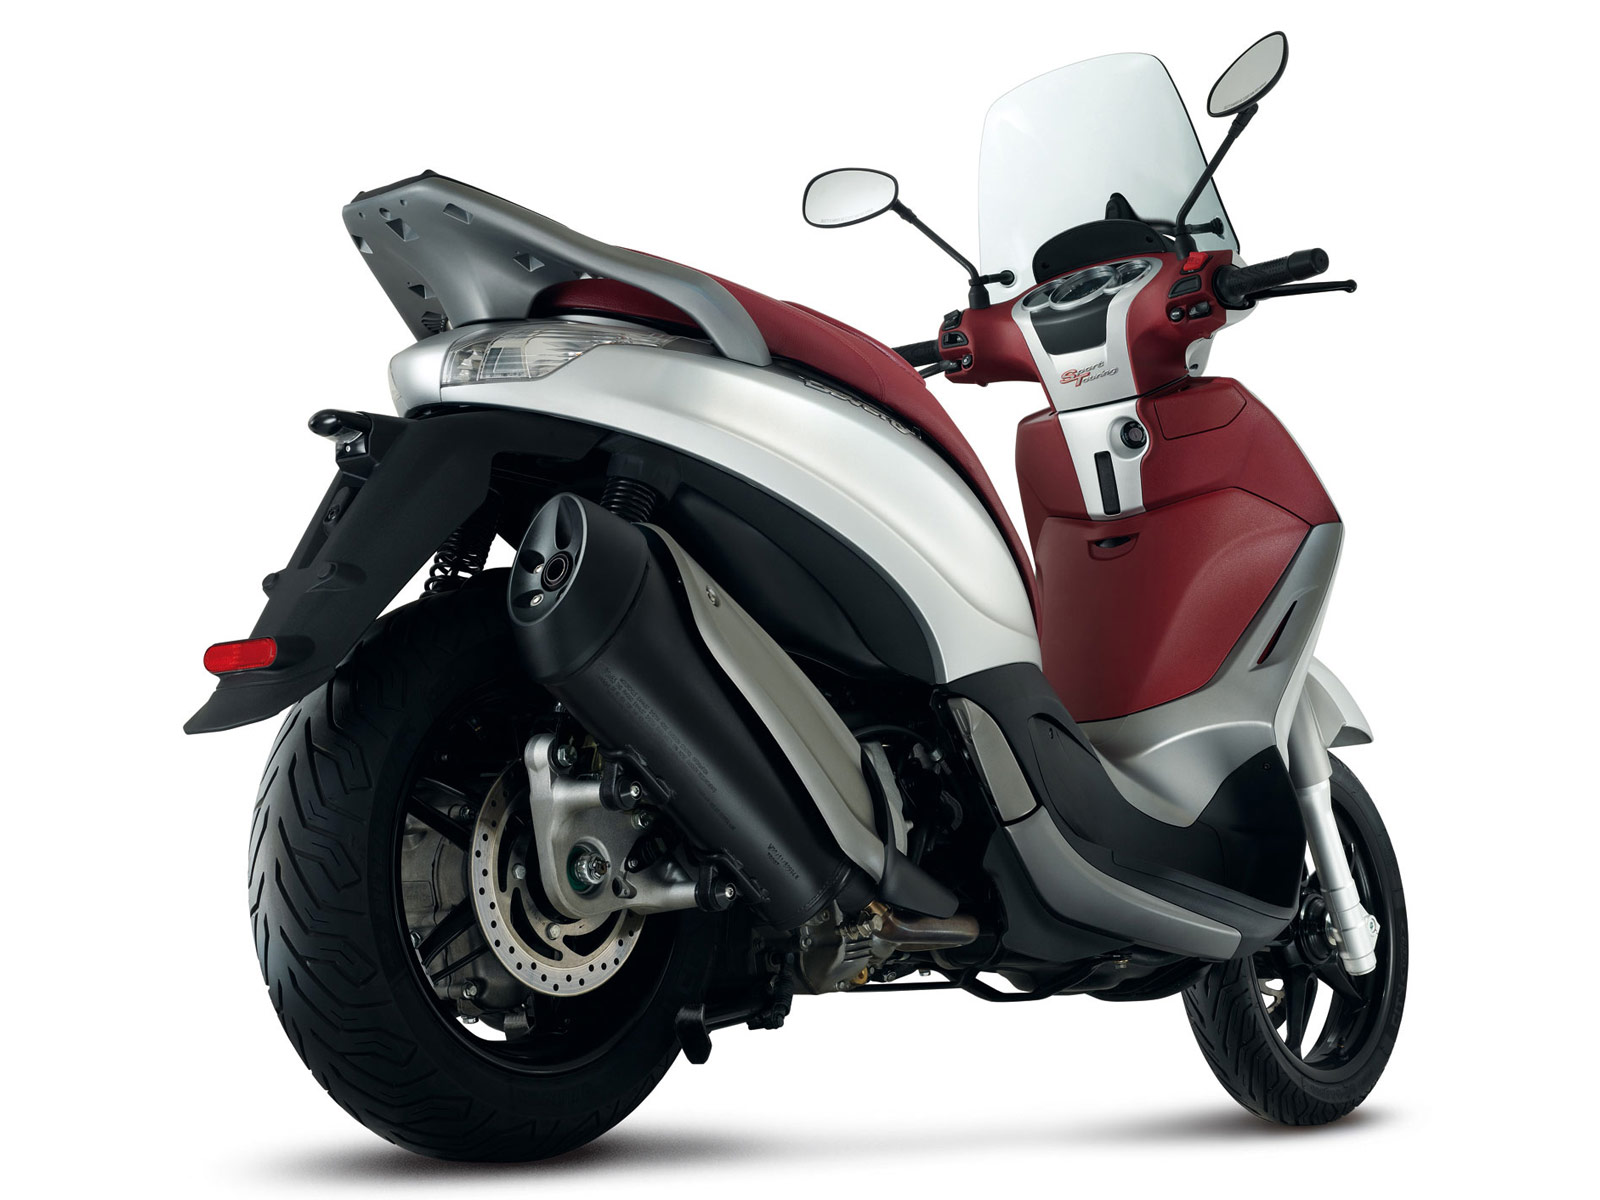 2013 piaggio bv350 scooter pictures insurance information. Black Bedroom Furniture Sets. Home Design Ideas